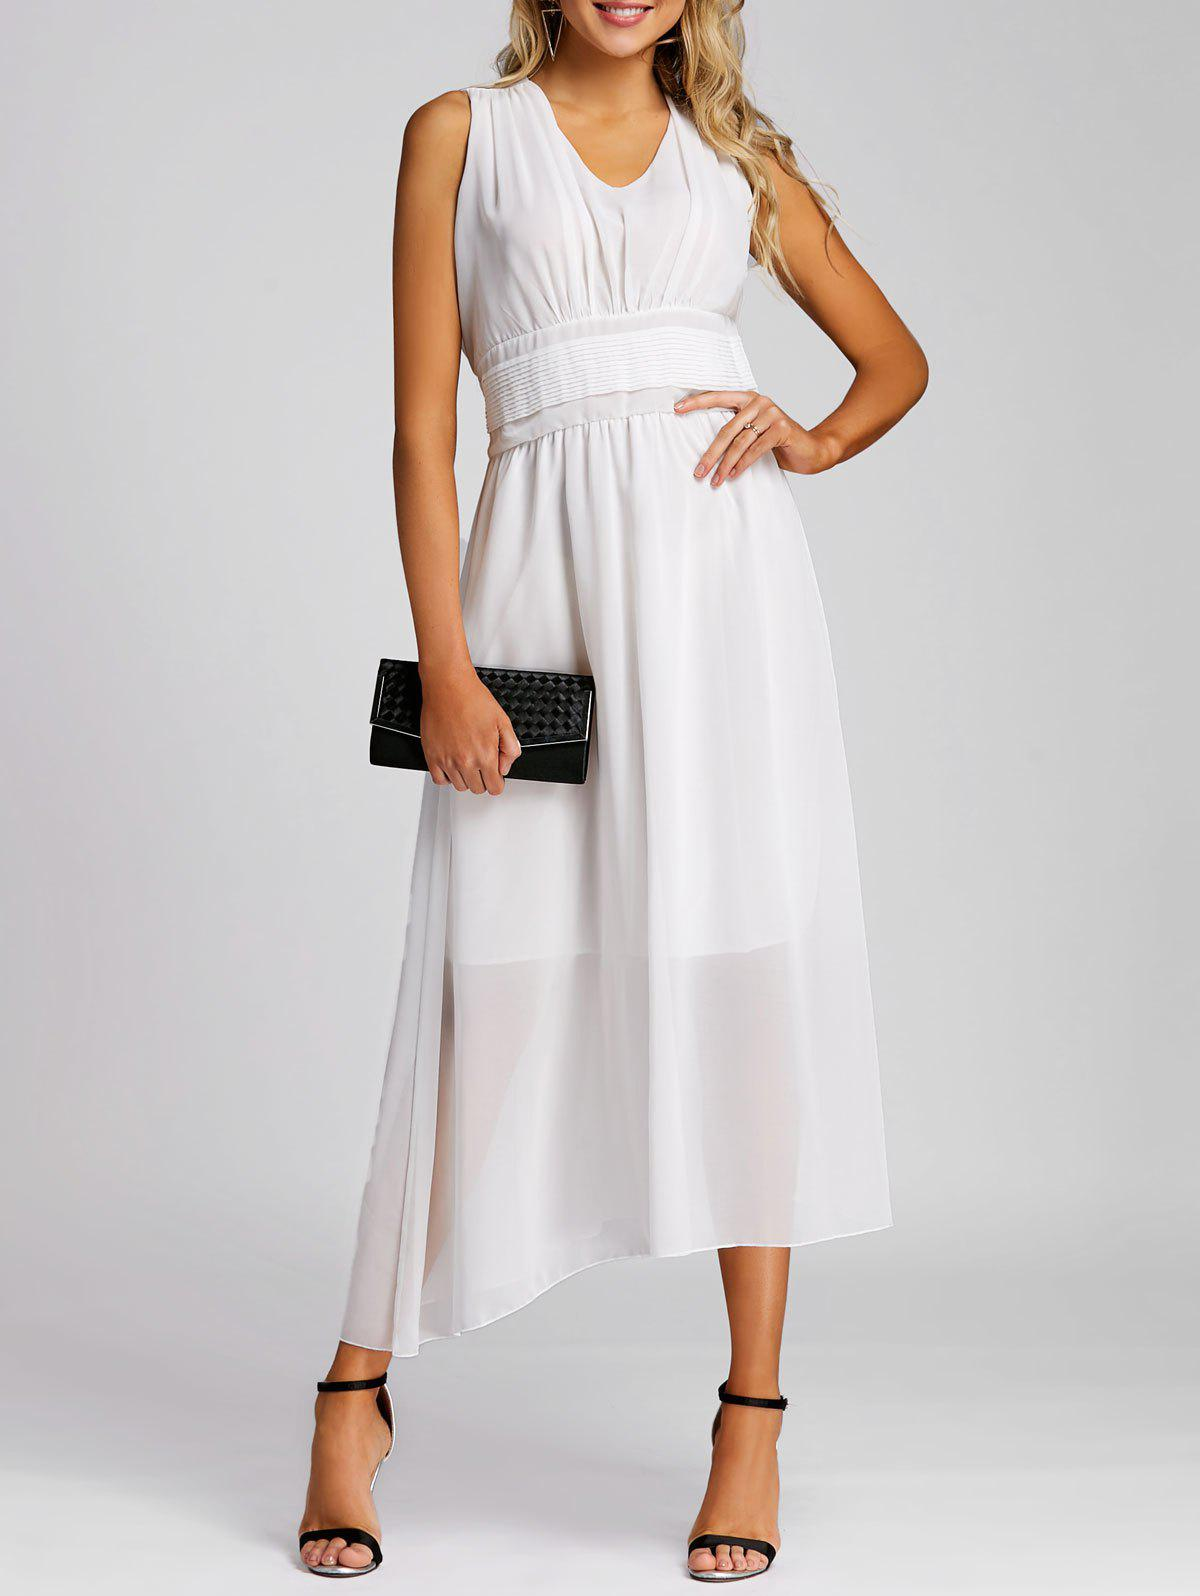 Empire Waist Chiffon Midi Dress - WHITE L